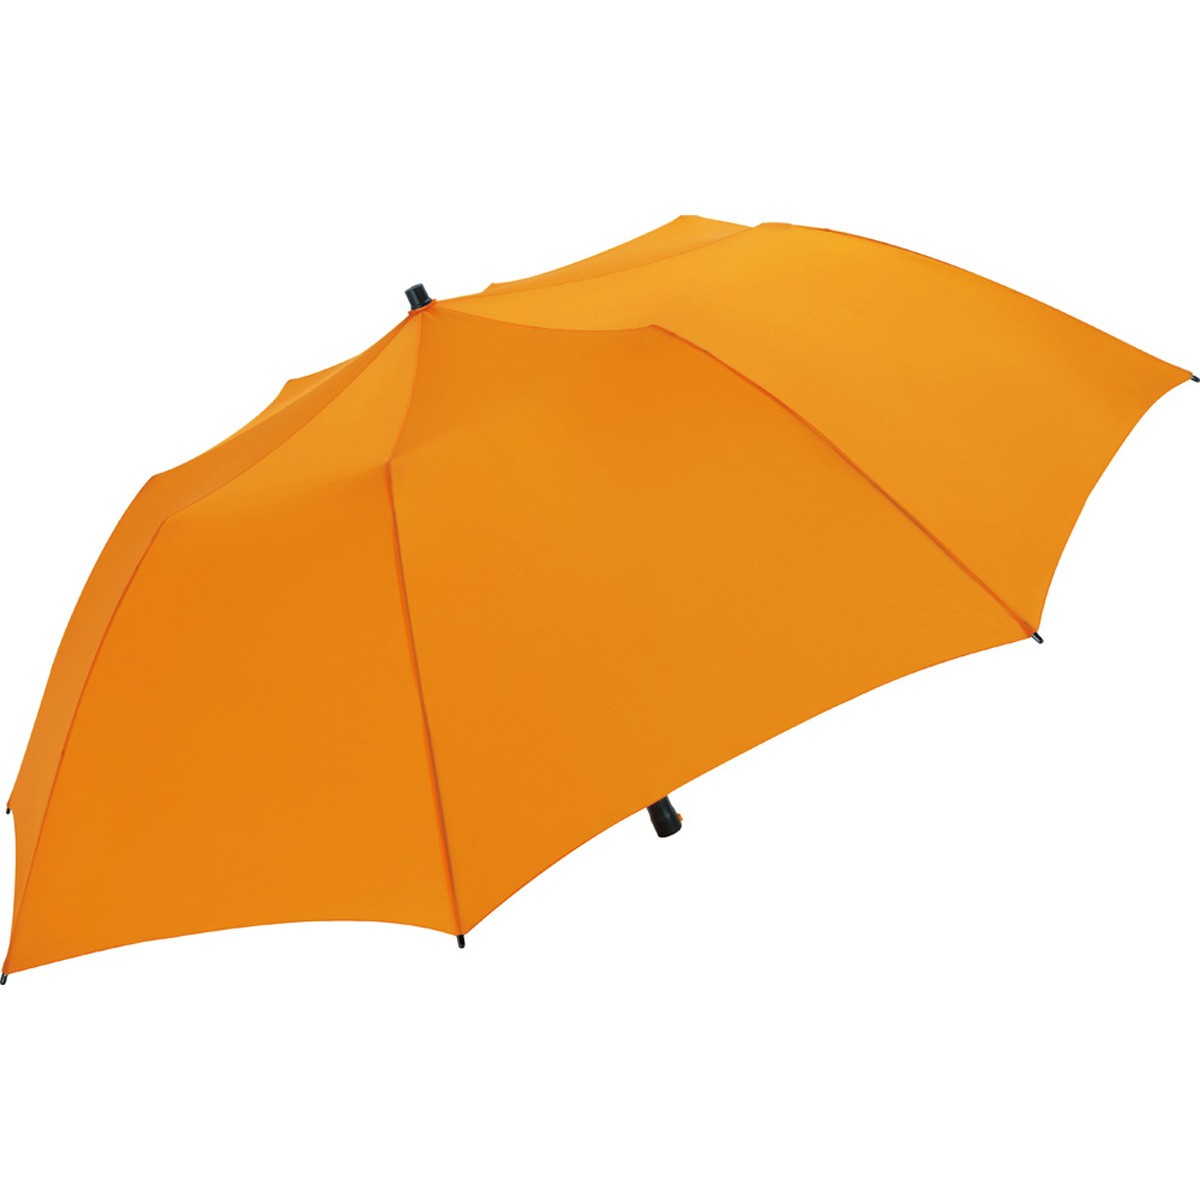 Parasol de plage - special valise - 6139 - orange